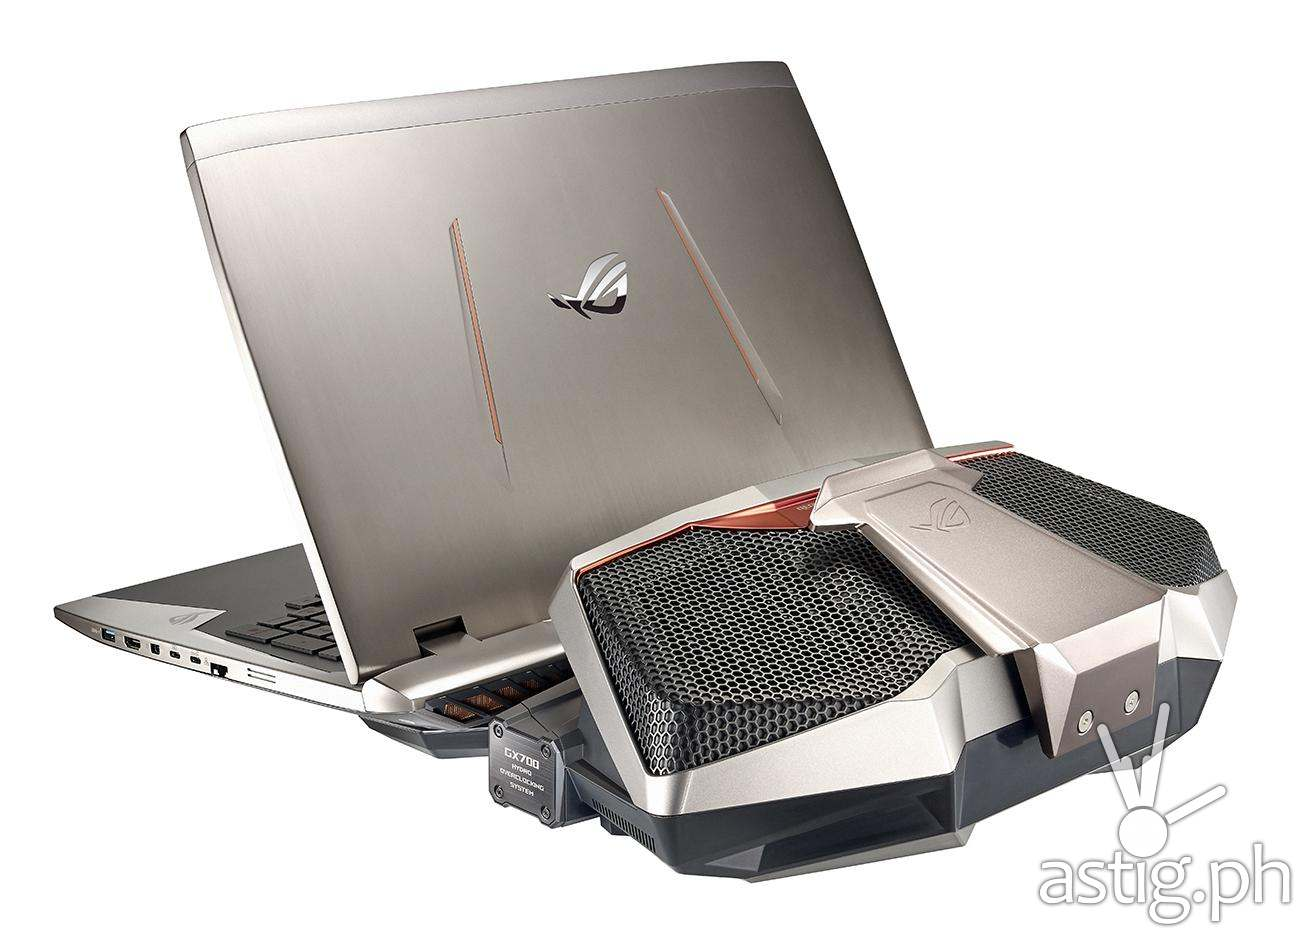 ASUS ROG GX700 water cooled gaming laptop